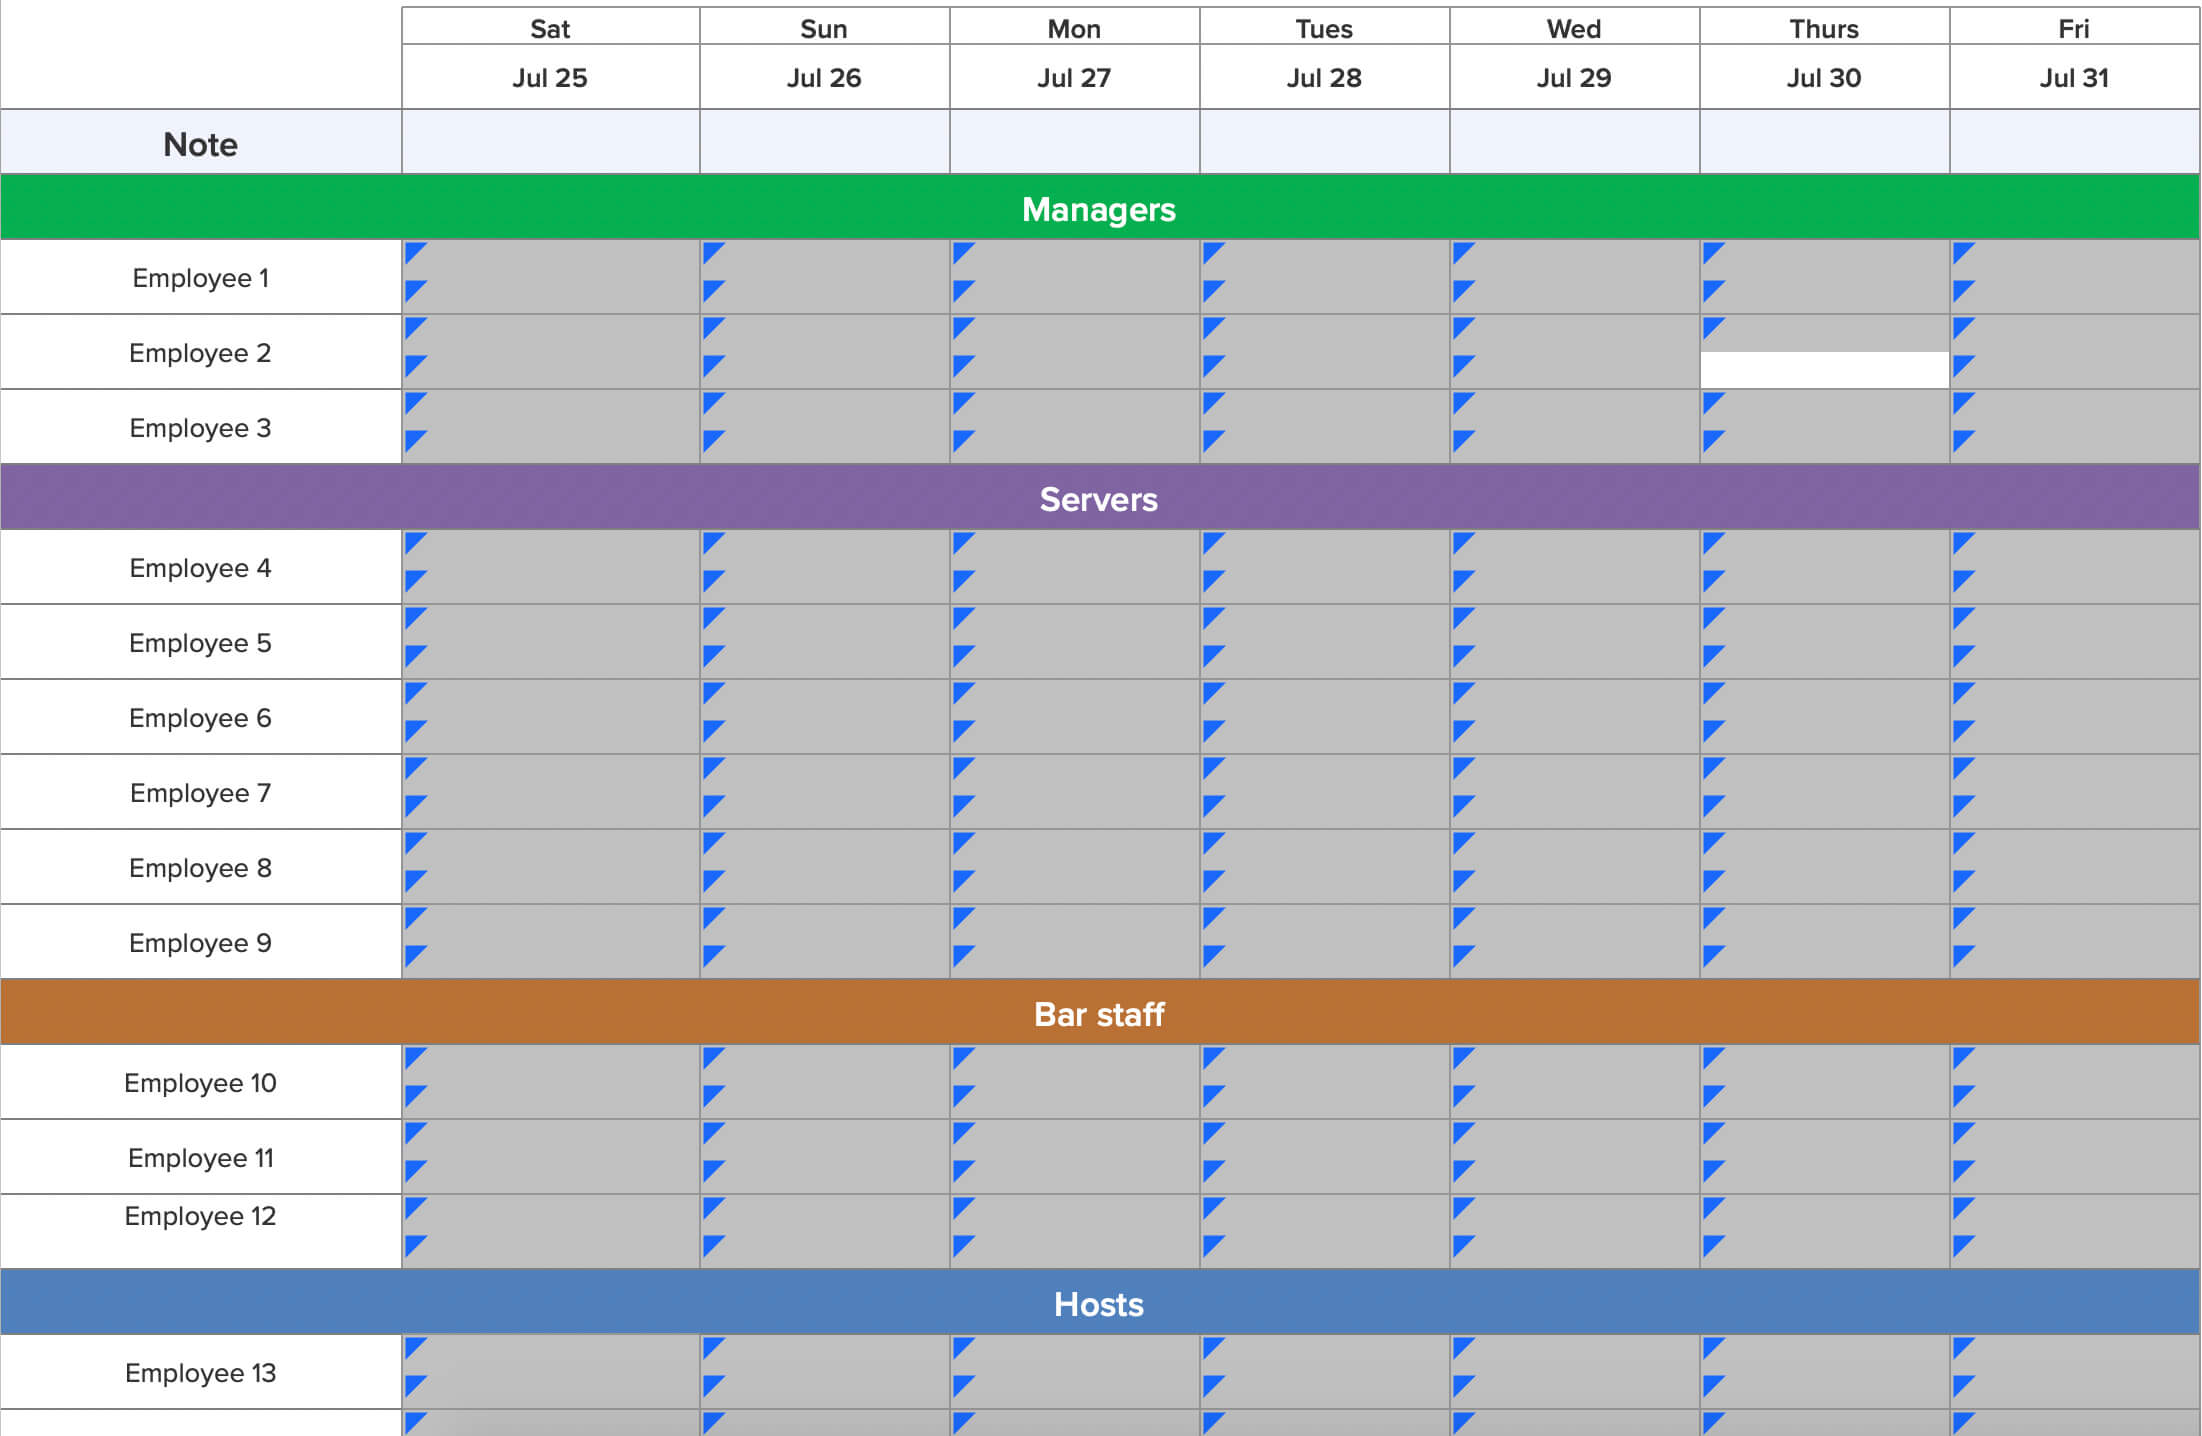 Spreadsheet Preview